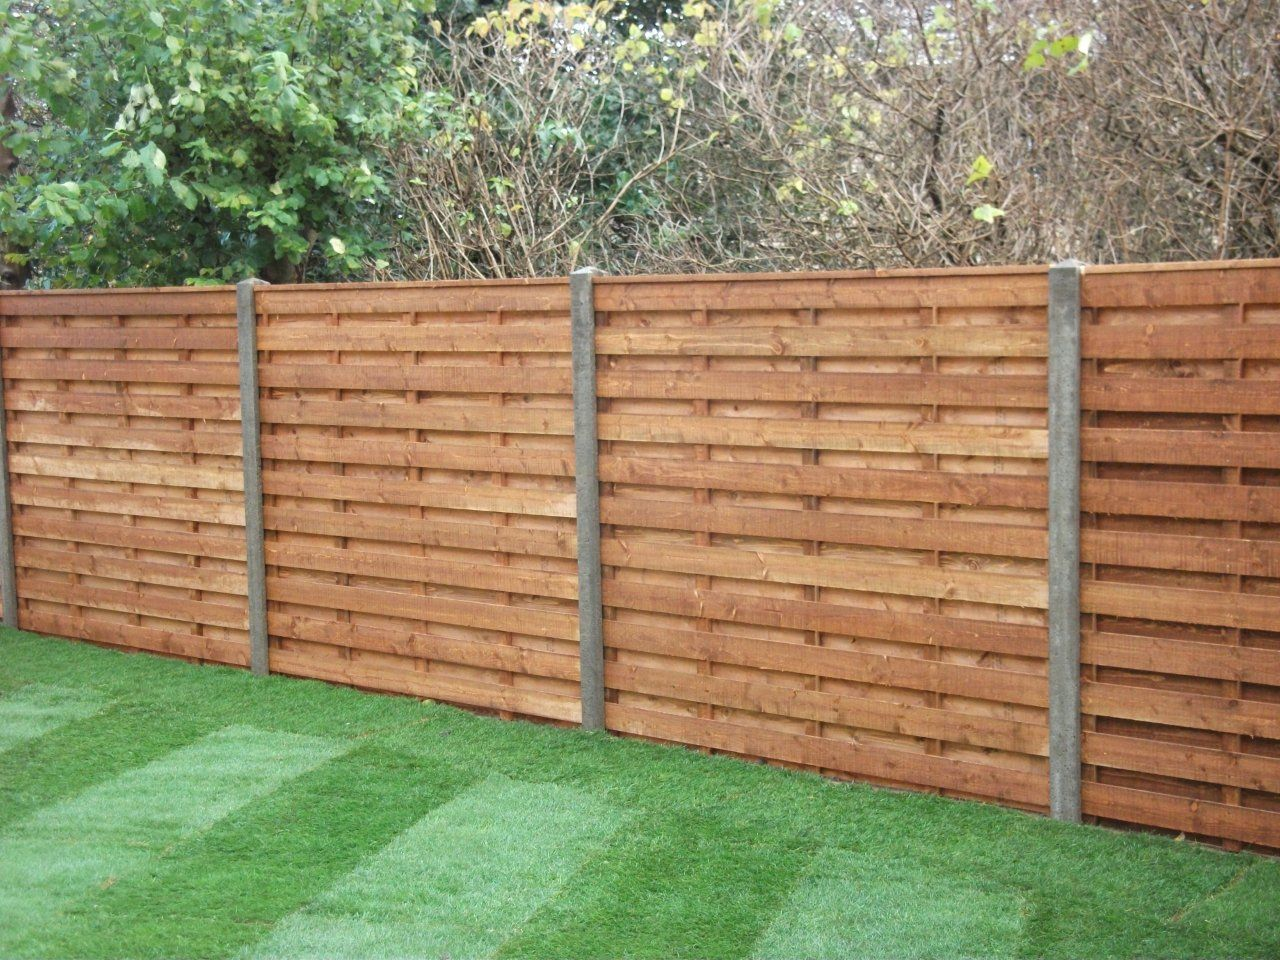 We have plenty of wood fence styles from wood fences from Fence planner